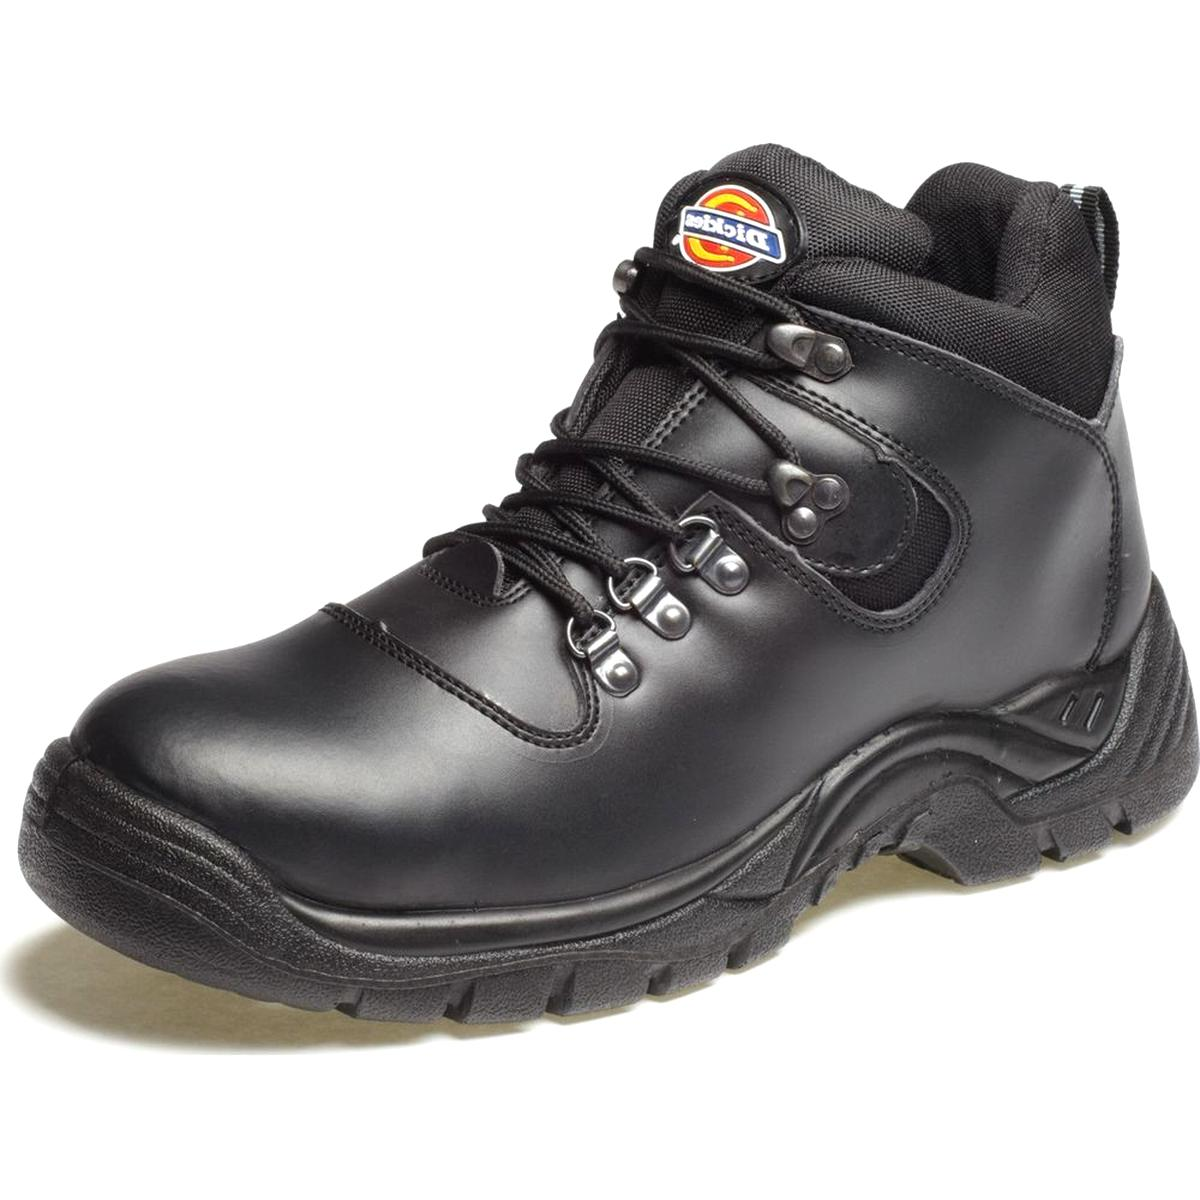 Chaussure Securite Dickies Chaussure Dickies d'occasion